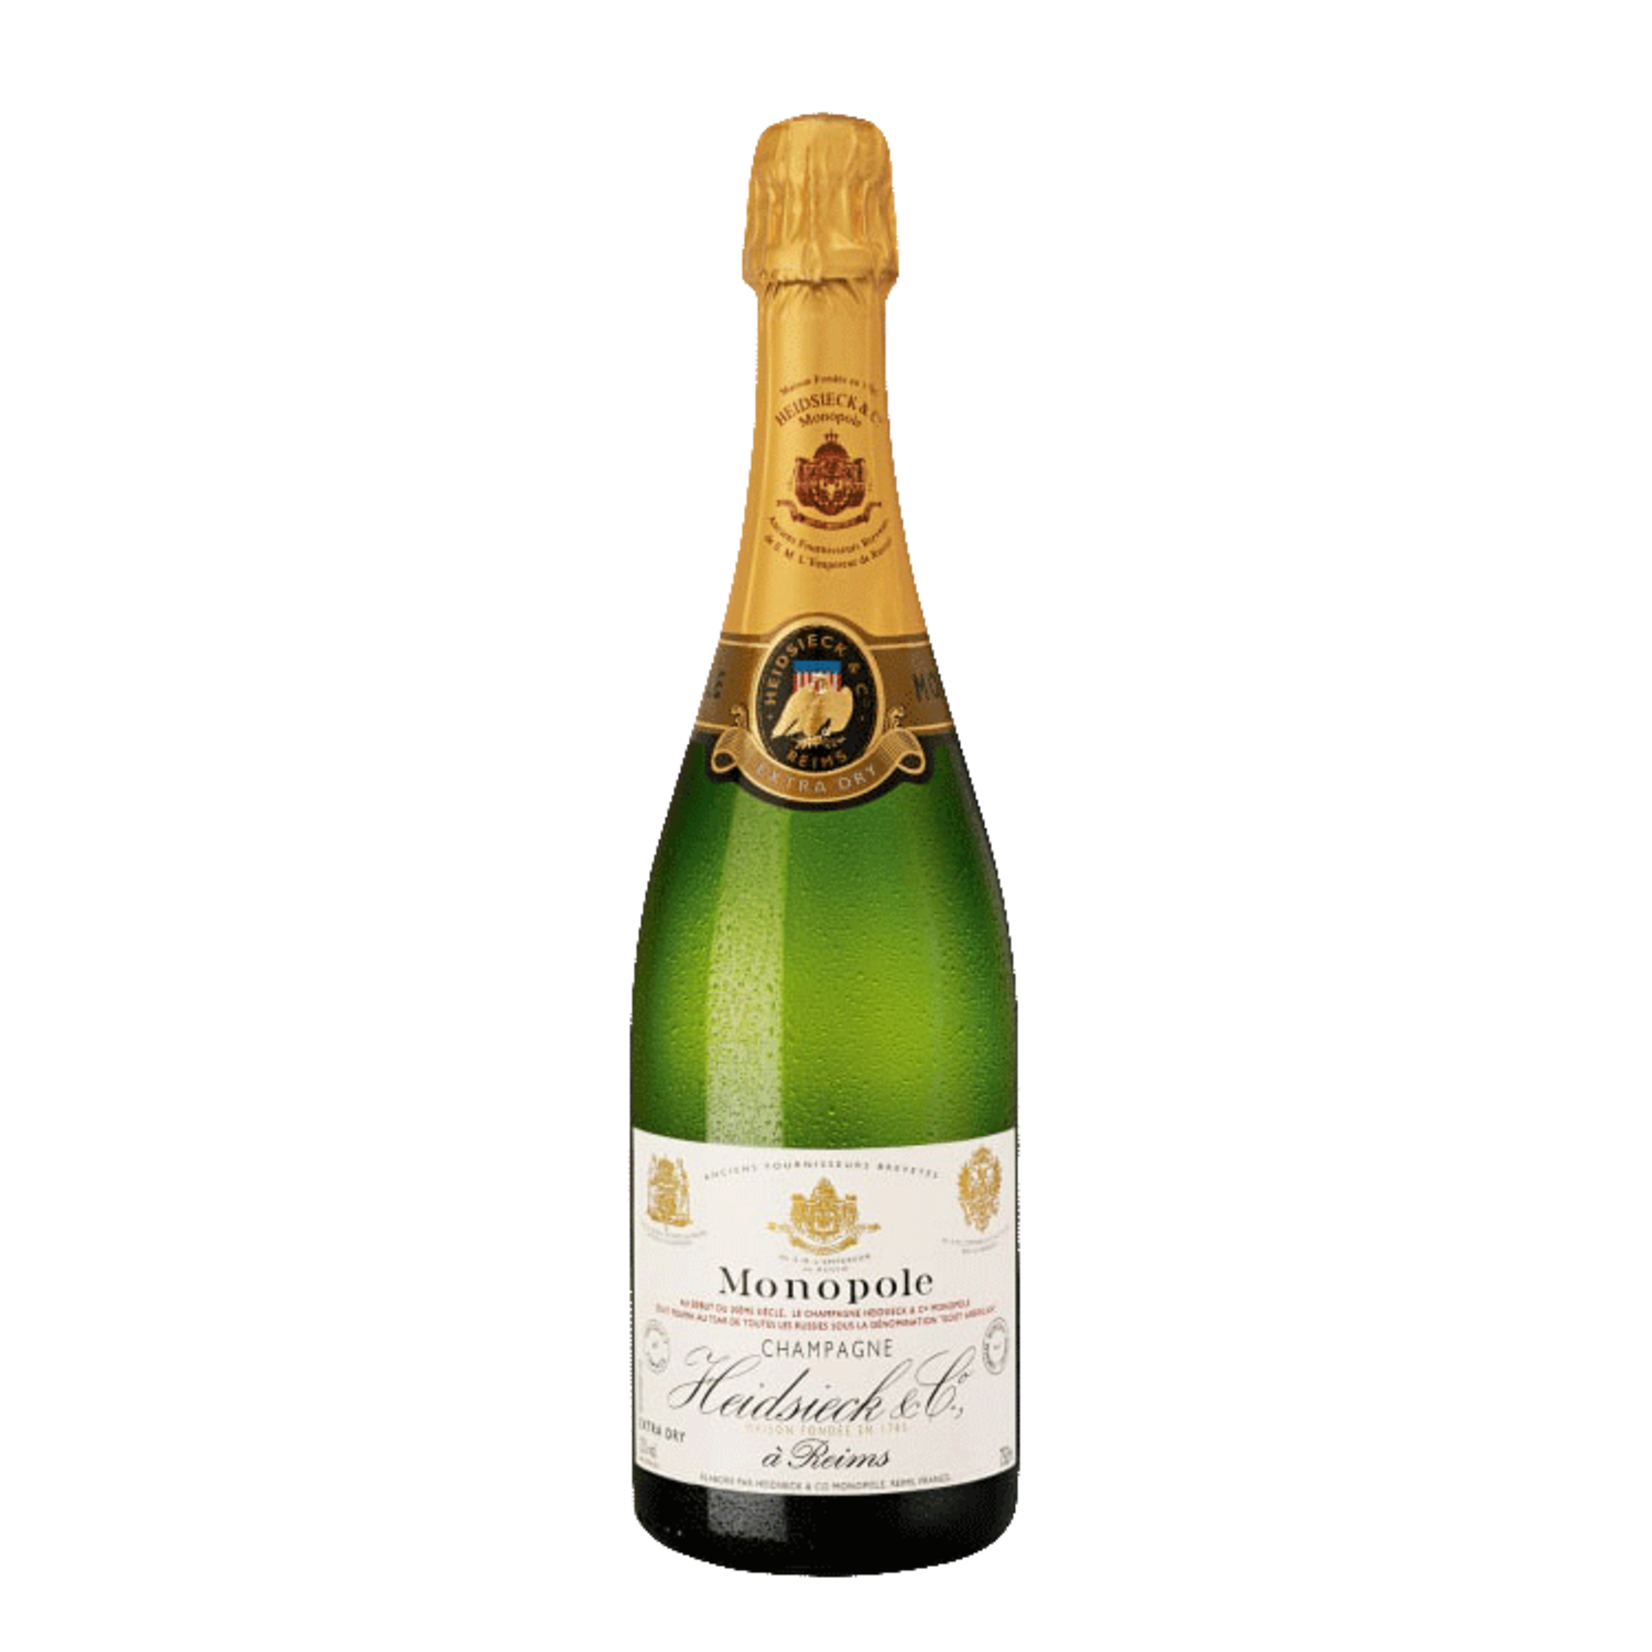 Sparkling Heidsieck Monopole Extra Dry Champagne